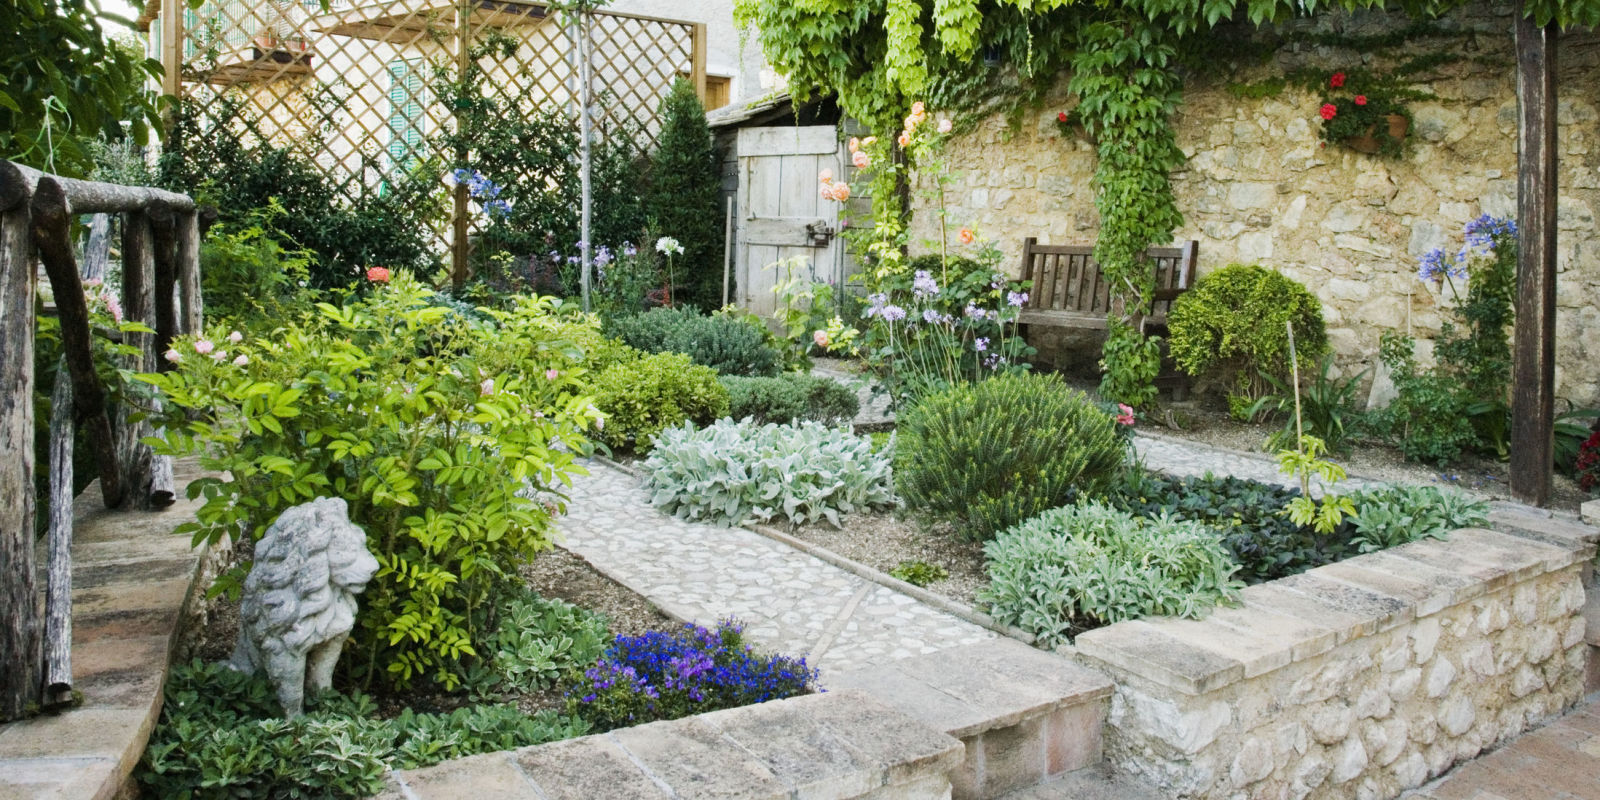 how to get rid of a large unwanted tree in your garden